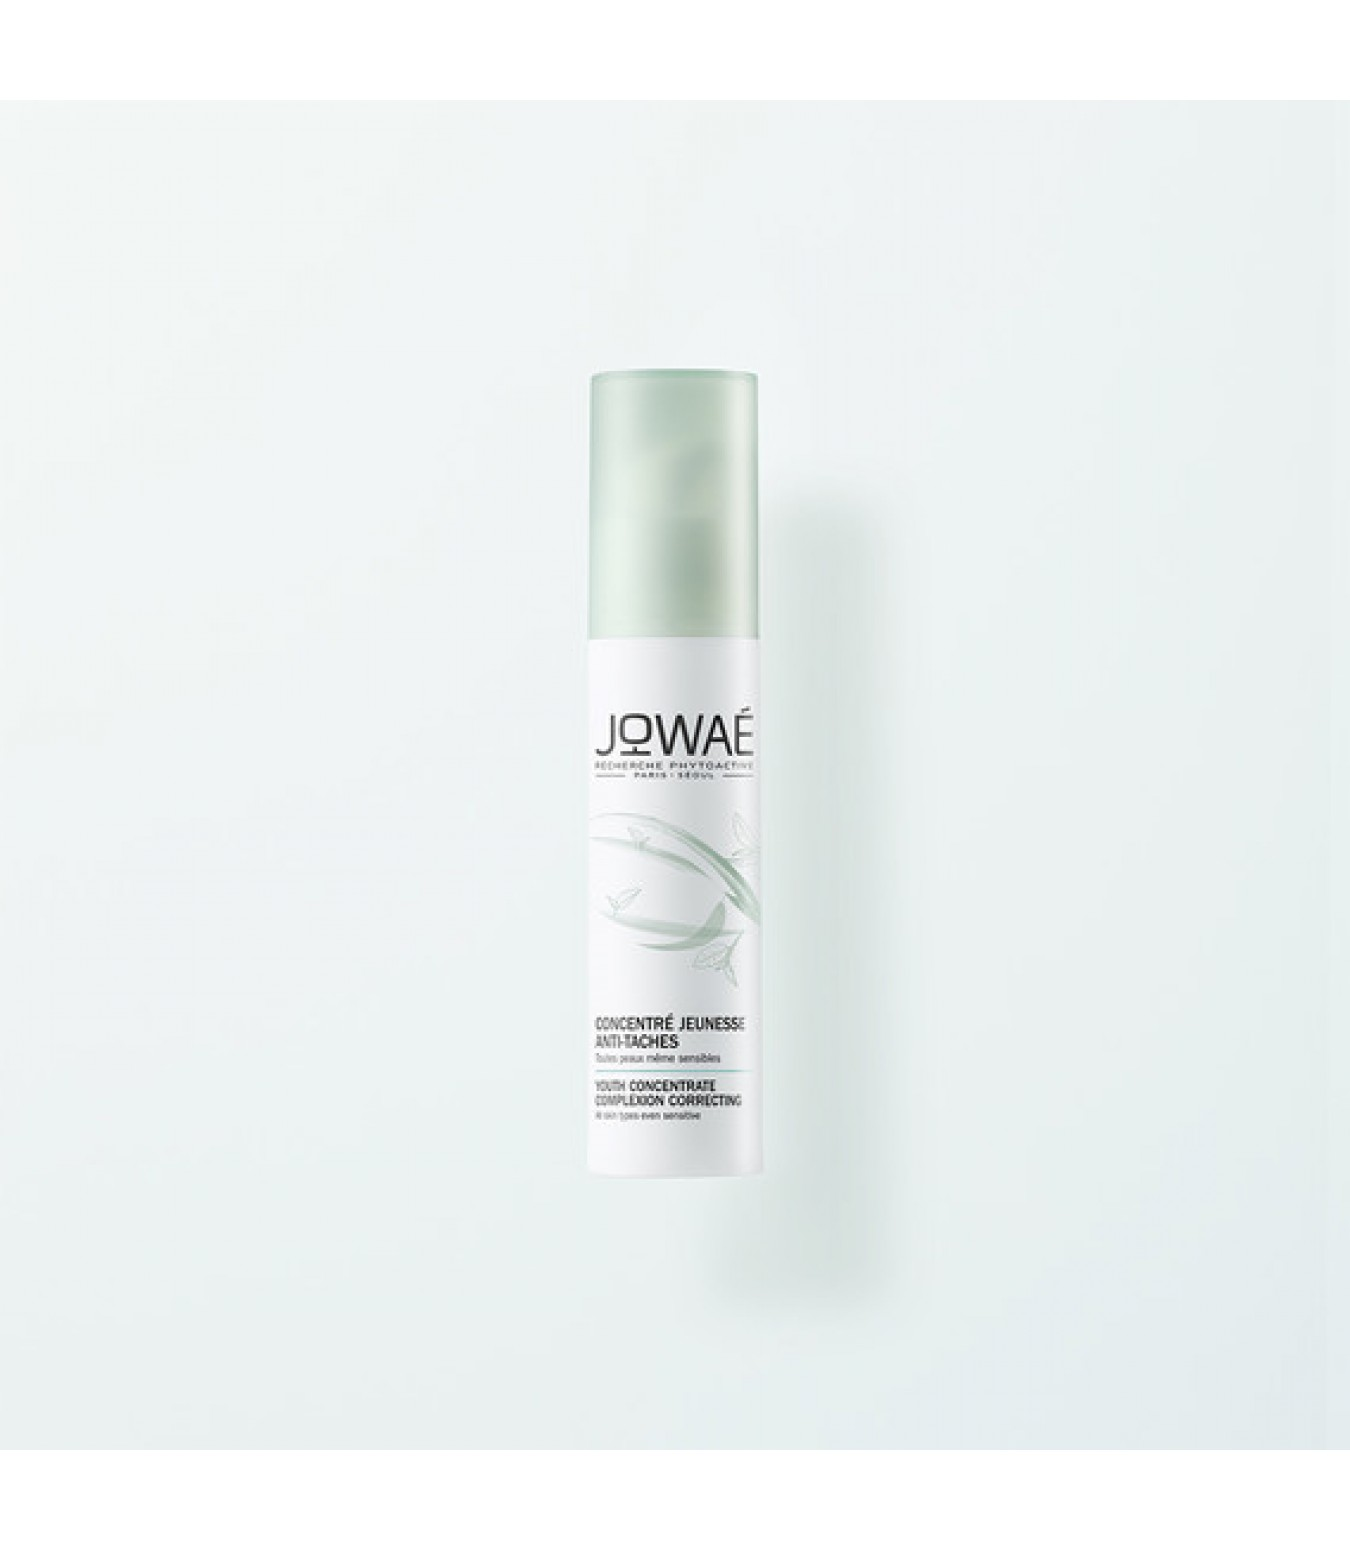 JOWAE Concentrato Giovinezza Antimacchia 30 ml